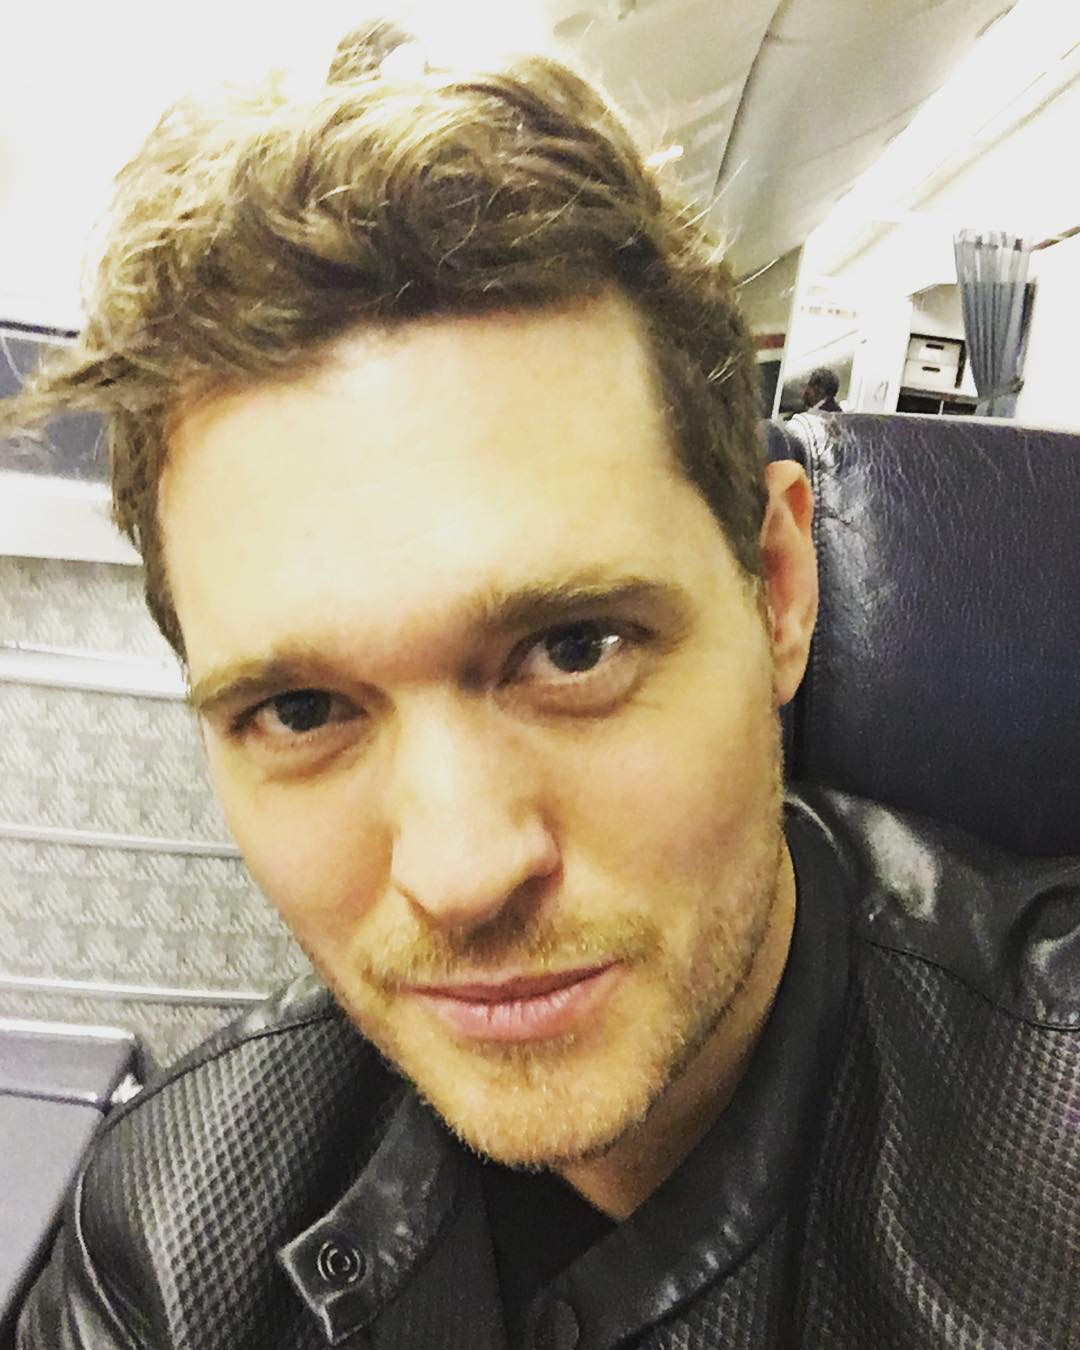 Michael Bublé Instagram: L.A here I come !!! Only 18 hours and 1 connection to go !!!!    ...